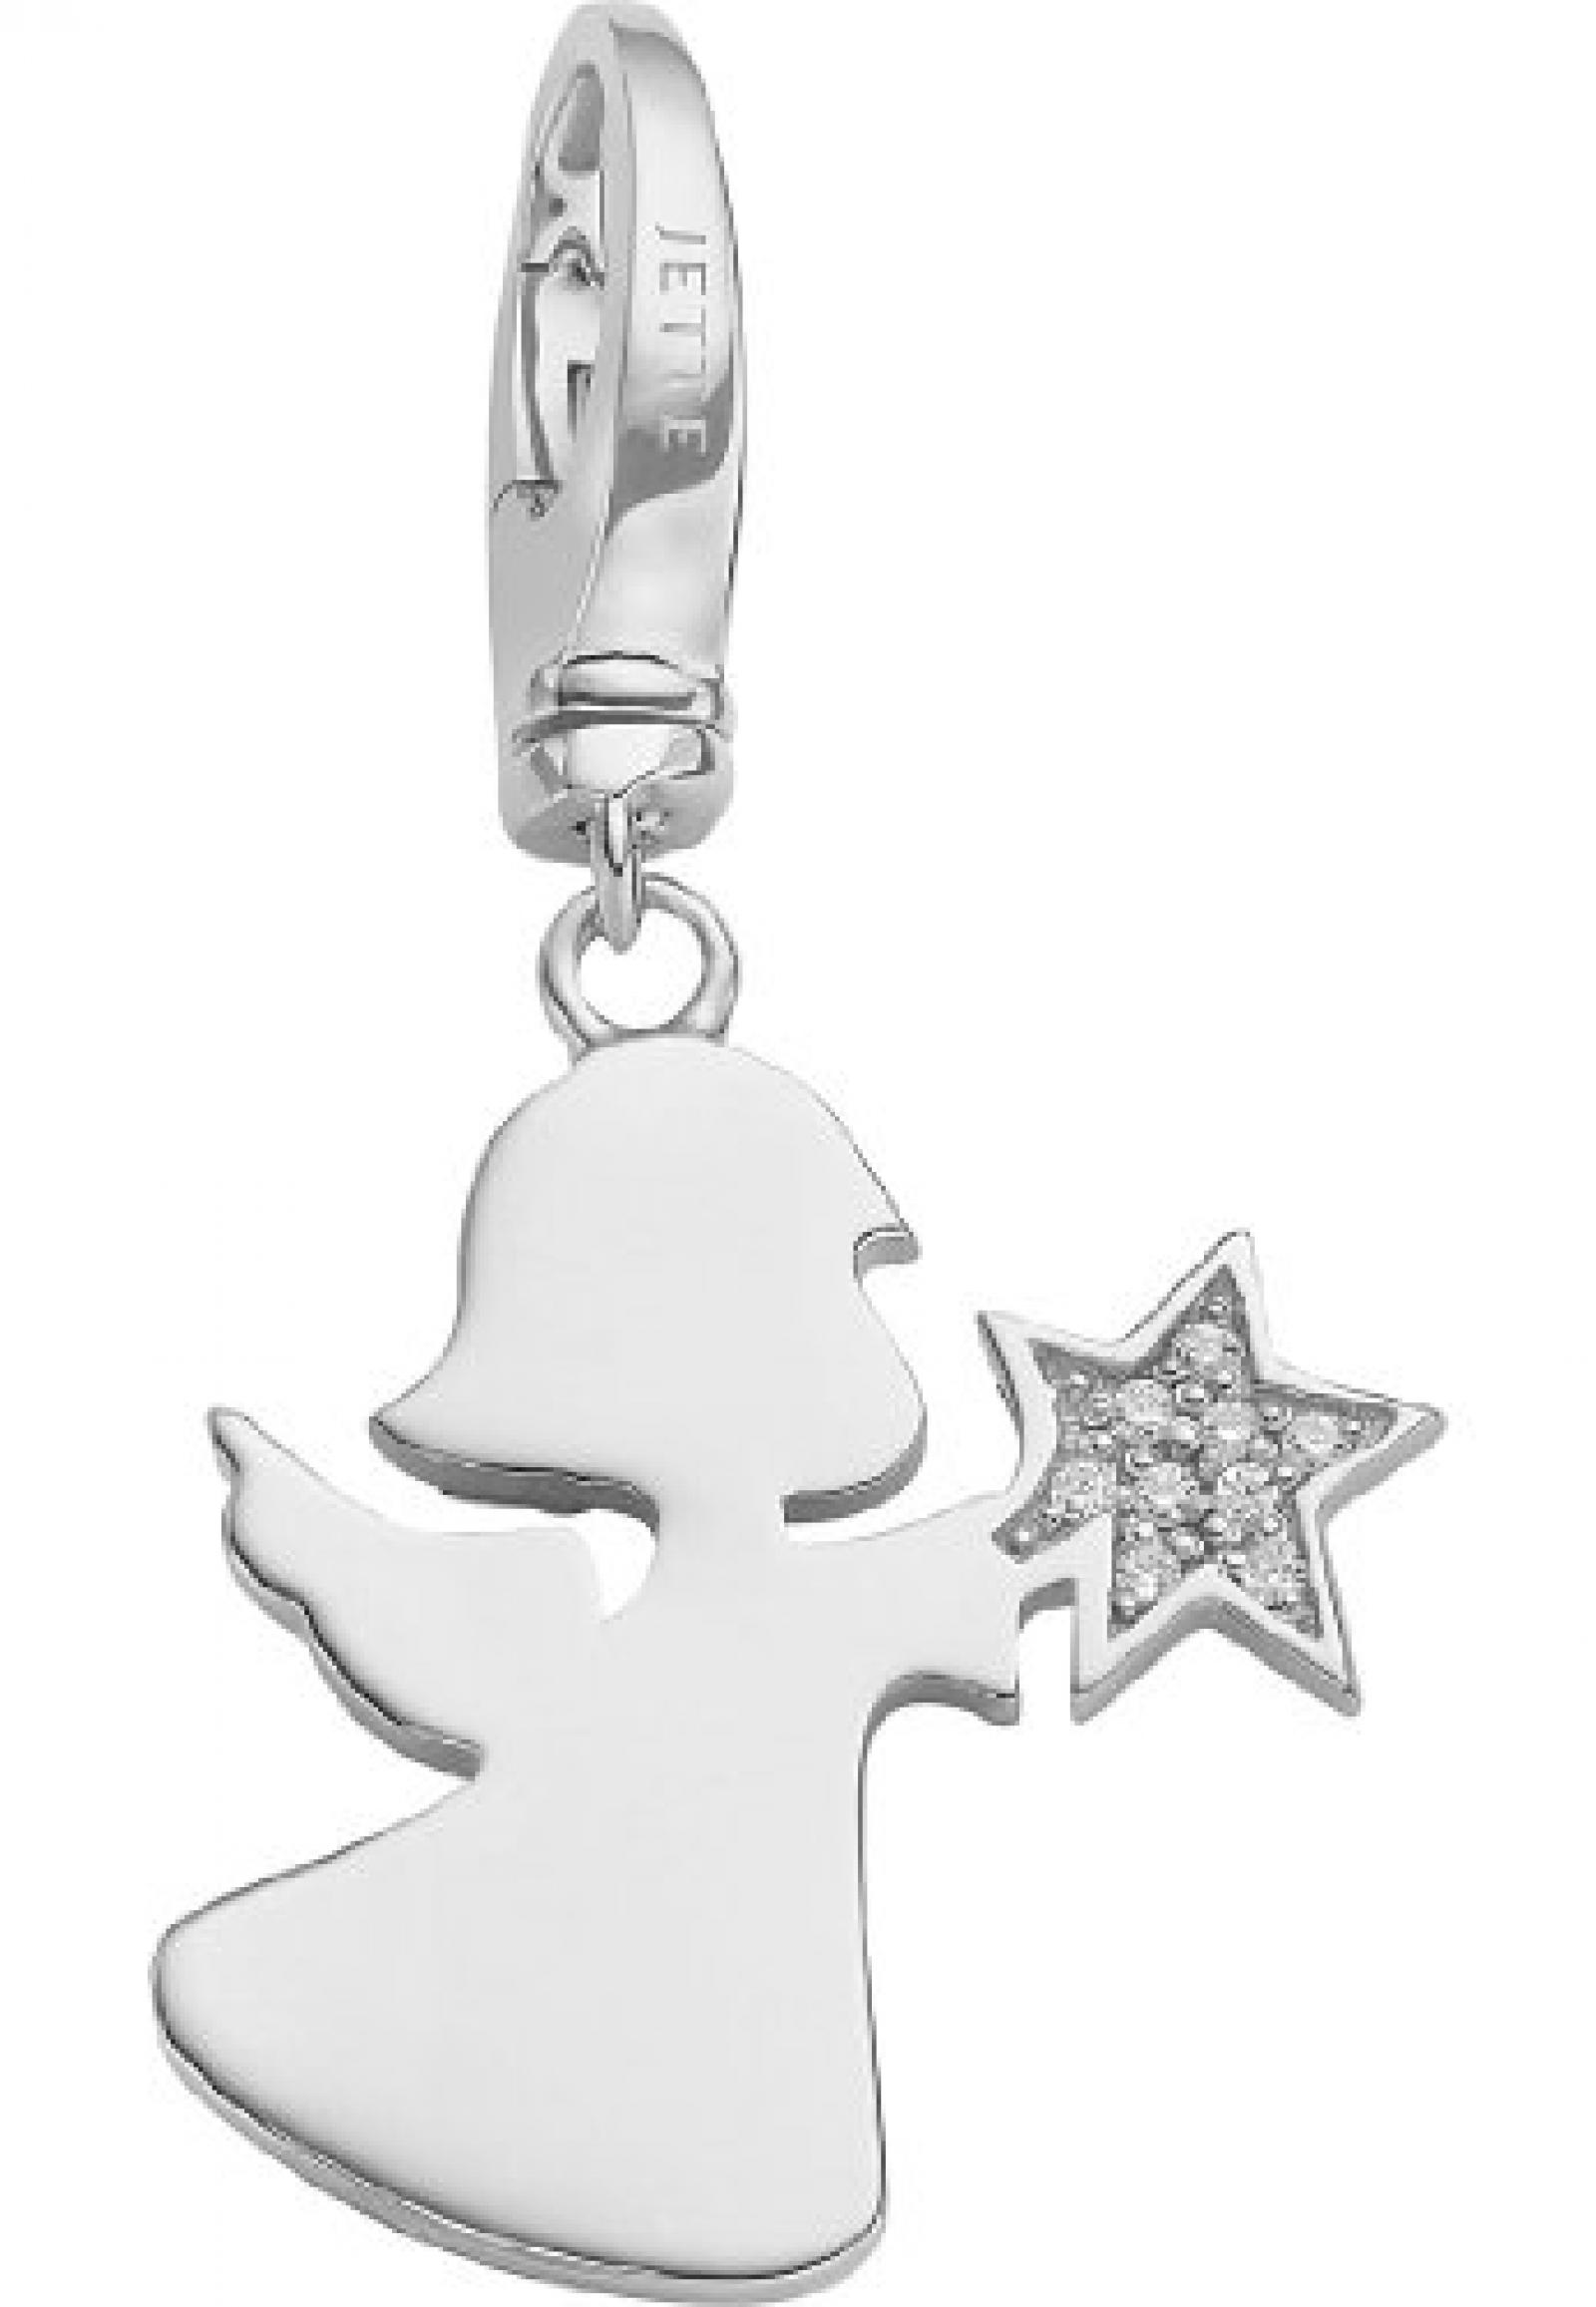 JETTE Charms Damen-Charm CHARM 925er Silber 9 Zirkonia One Size, silber